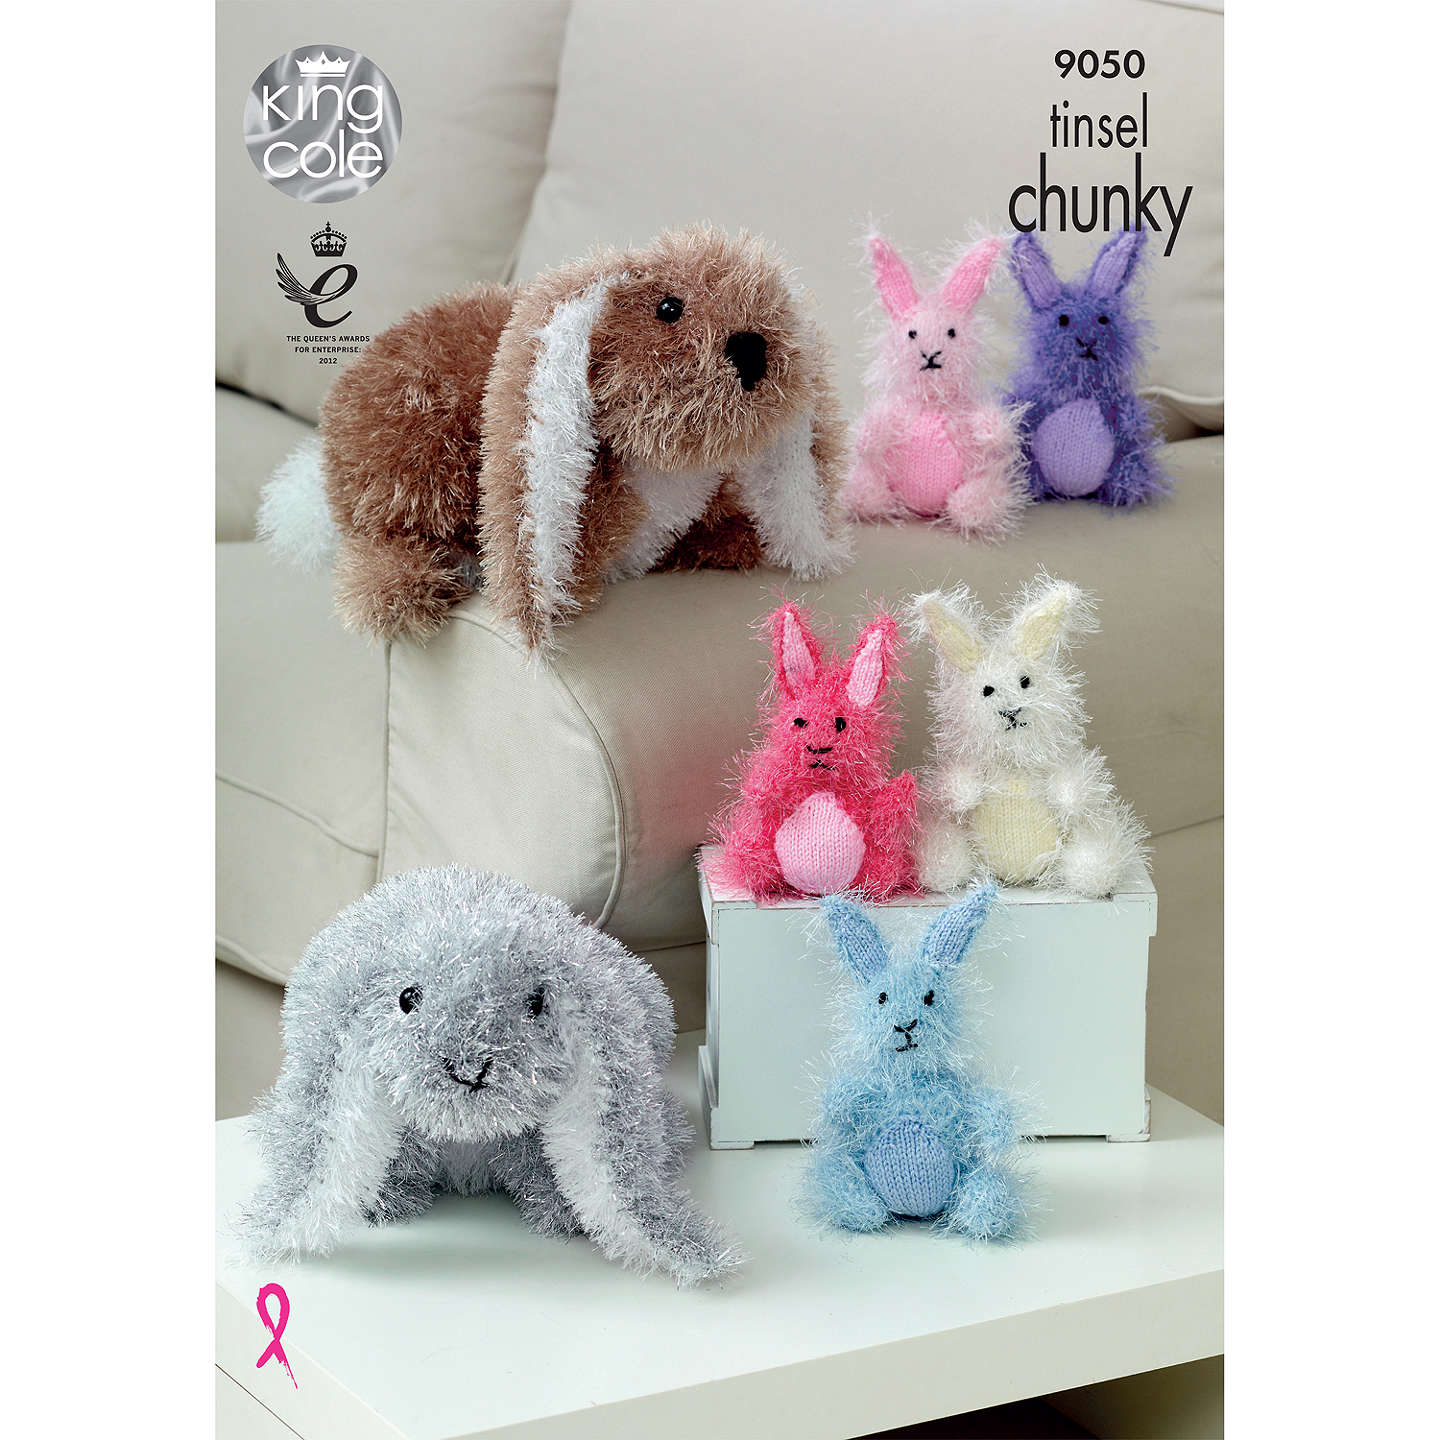 BuyKing Cole Tinsel Chunky Rabbit Plush Knitting Pattern, 9050 Online at johnlewis.com